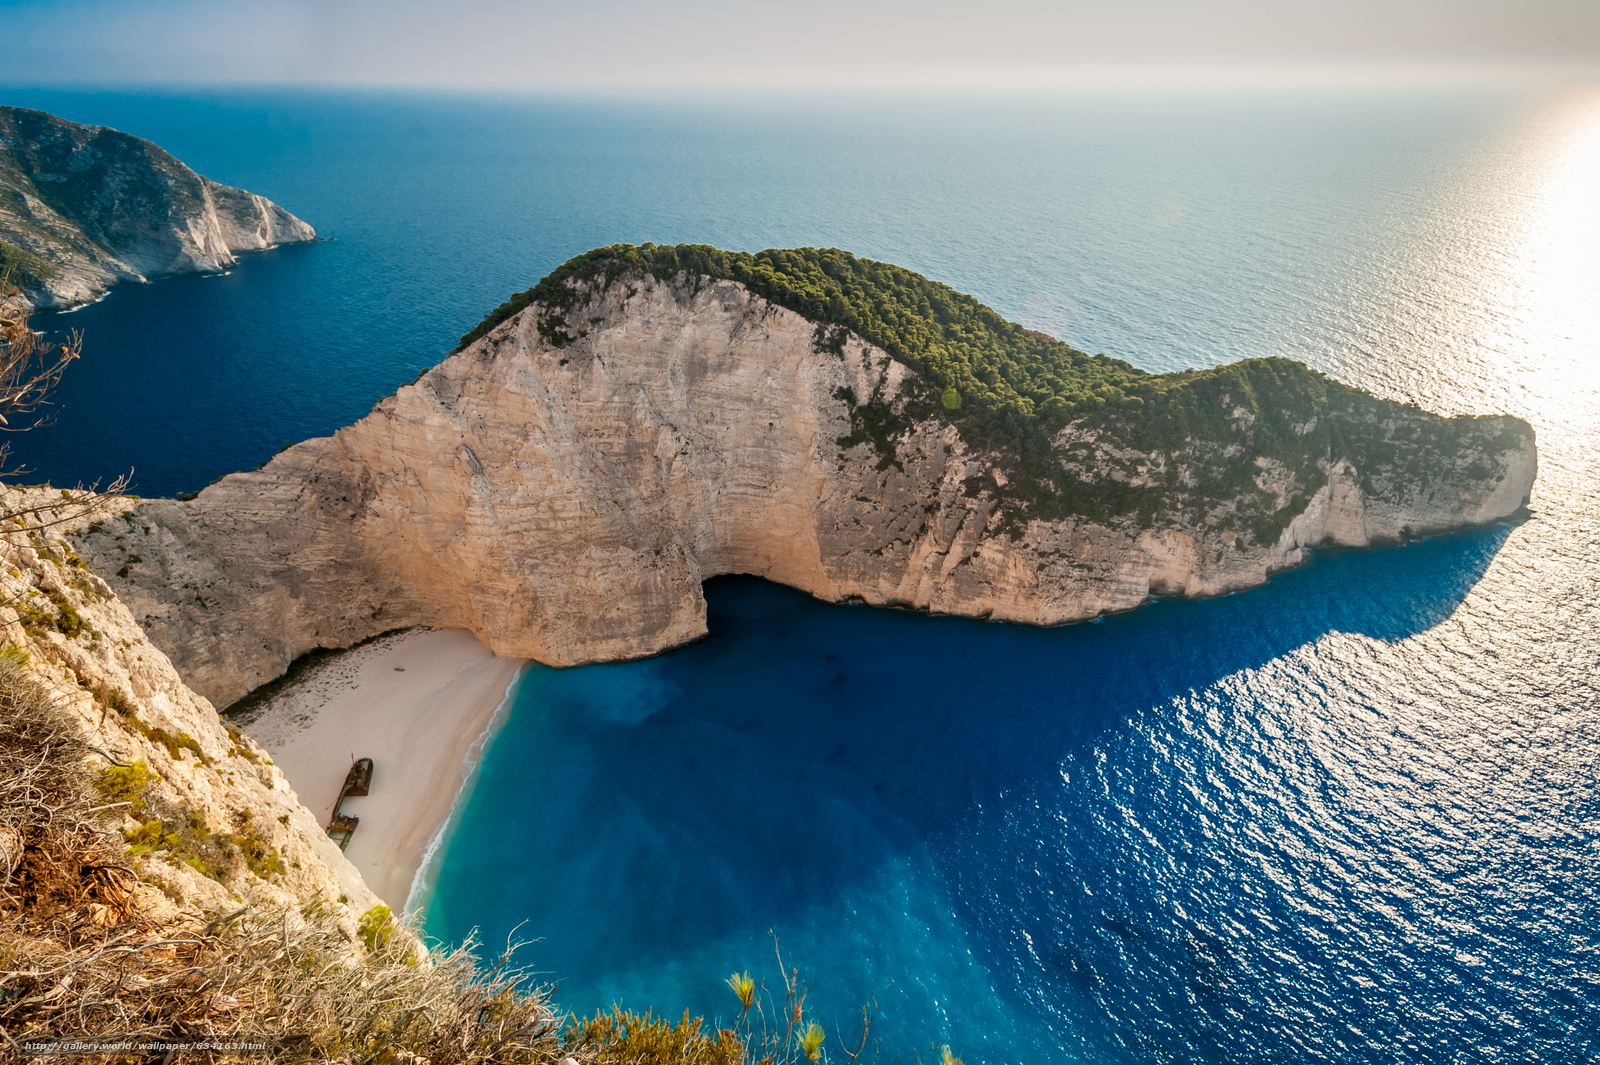 Download Wallpaper Shipwreck Navagio Beach Zakynthos Free Desktop In The Resolution 3789x2521 Picture No634163